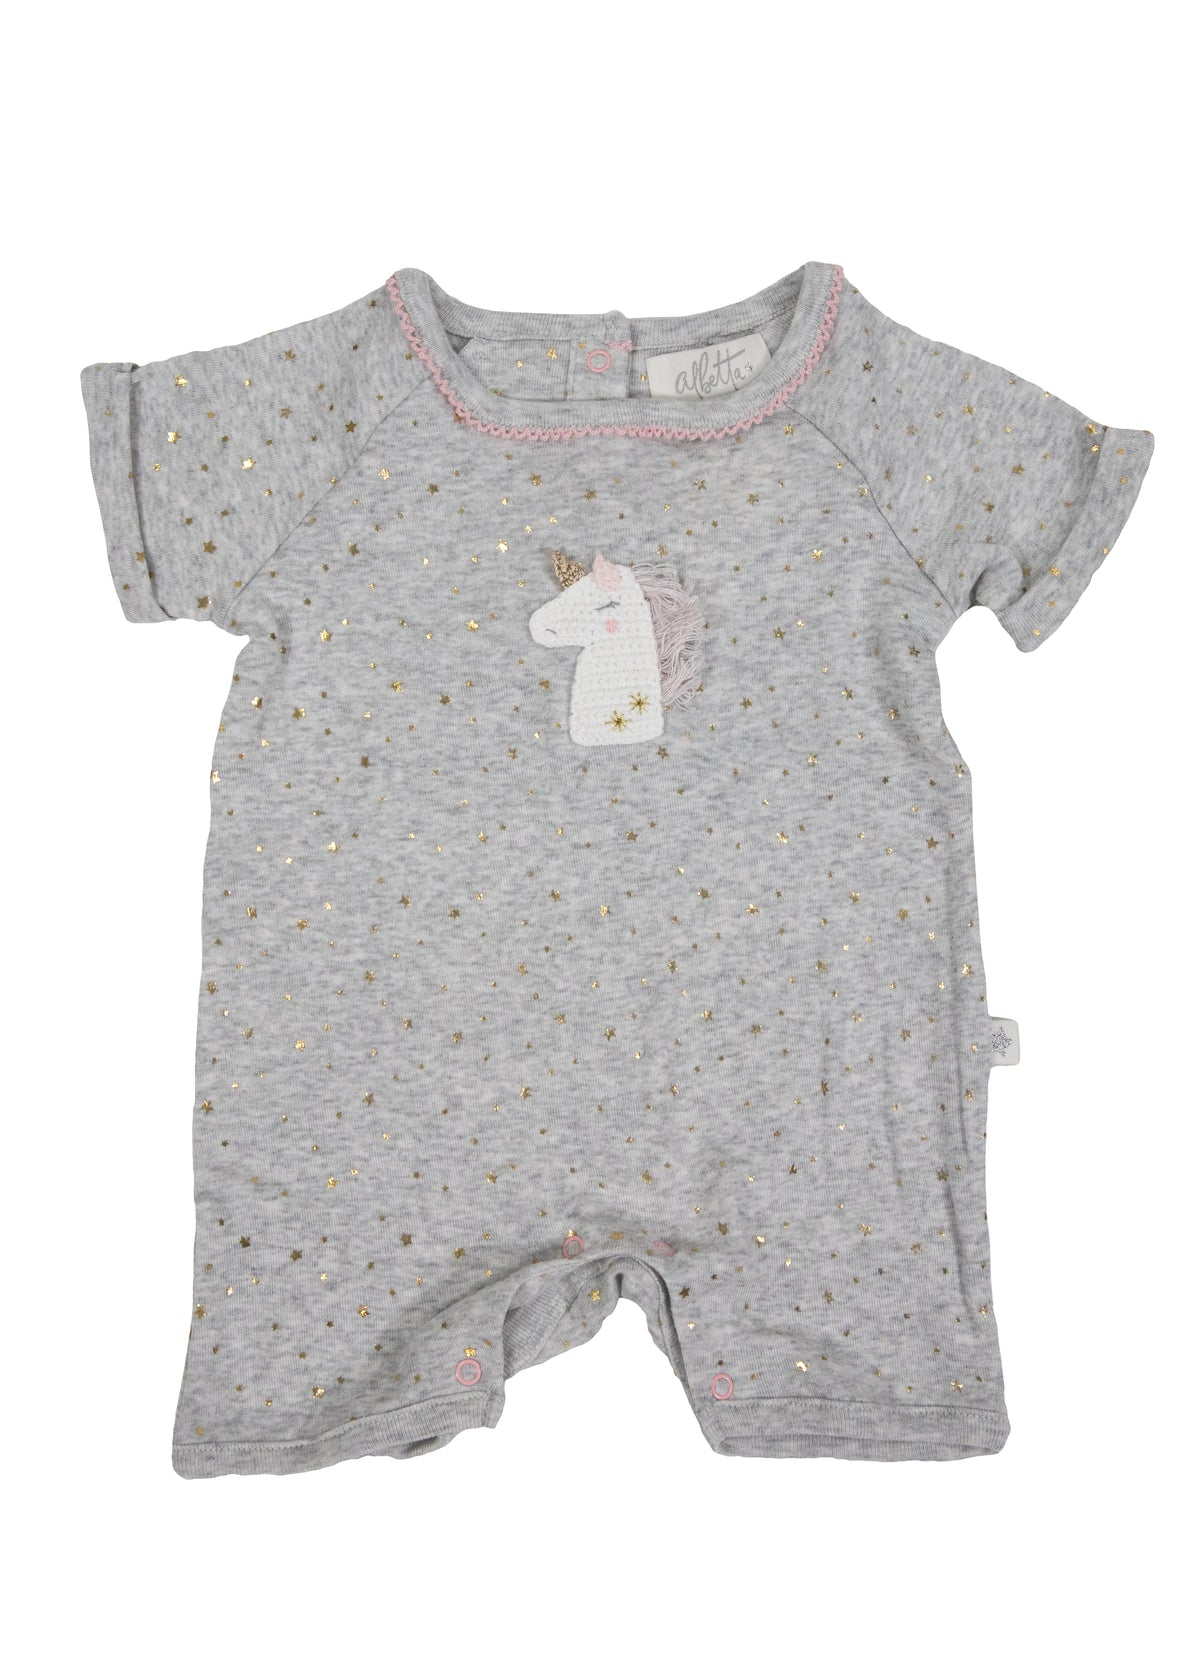 Albetta Sparkle Unicorn Short Sleeve Romper